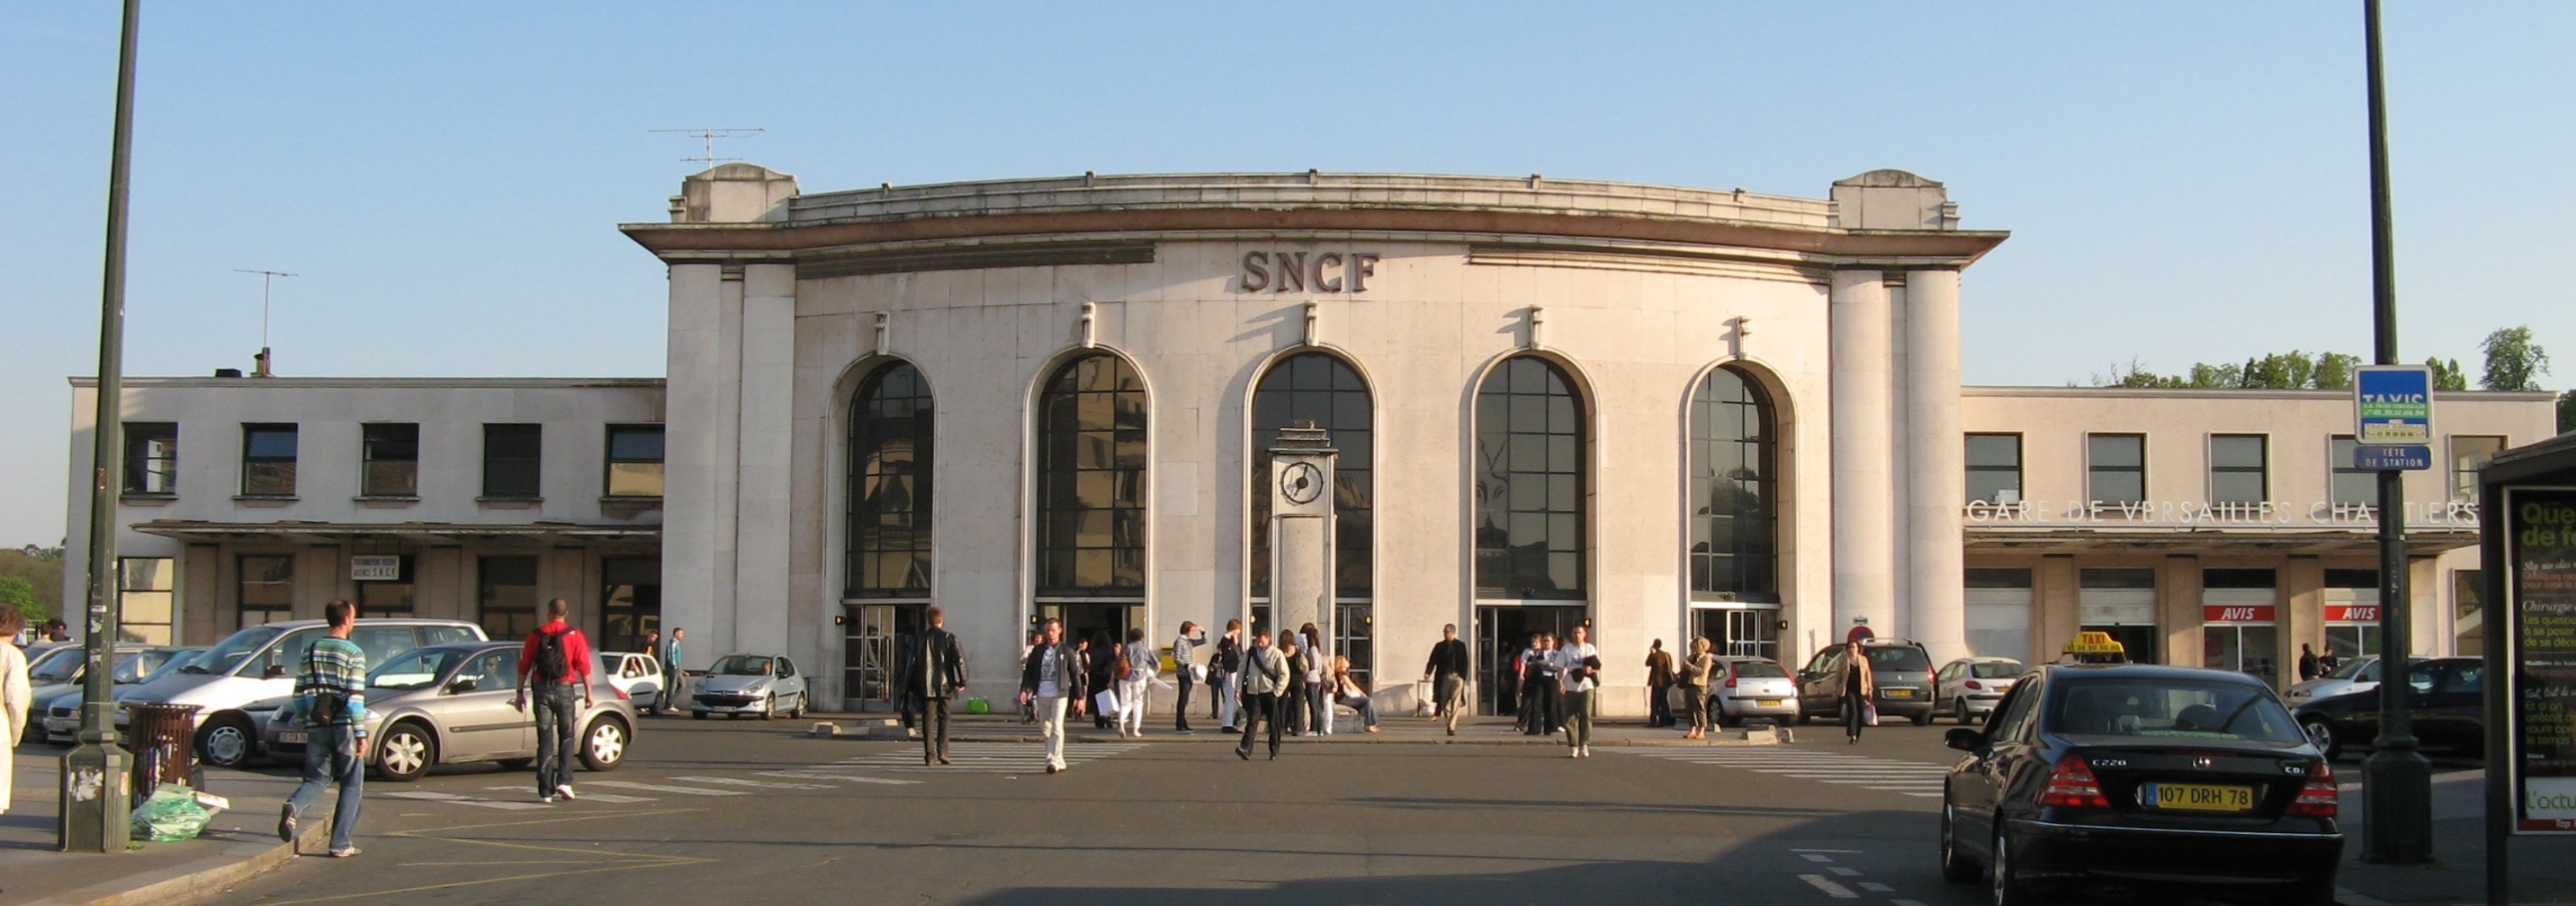 La gare de Versailles Chantiers (Photo d'illustration)